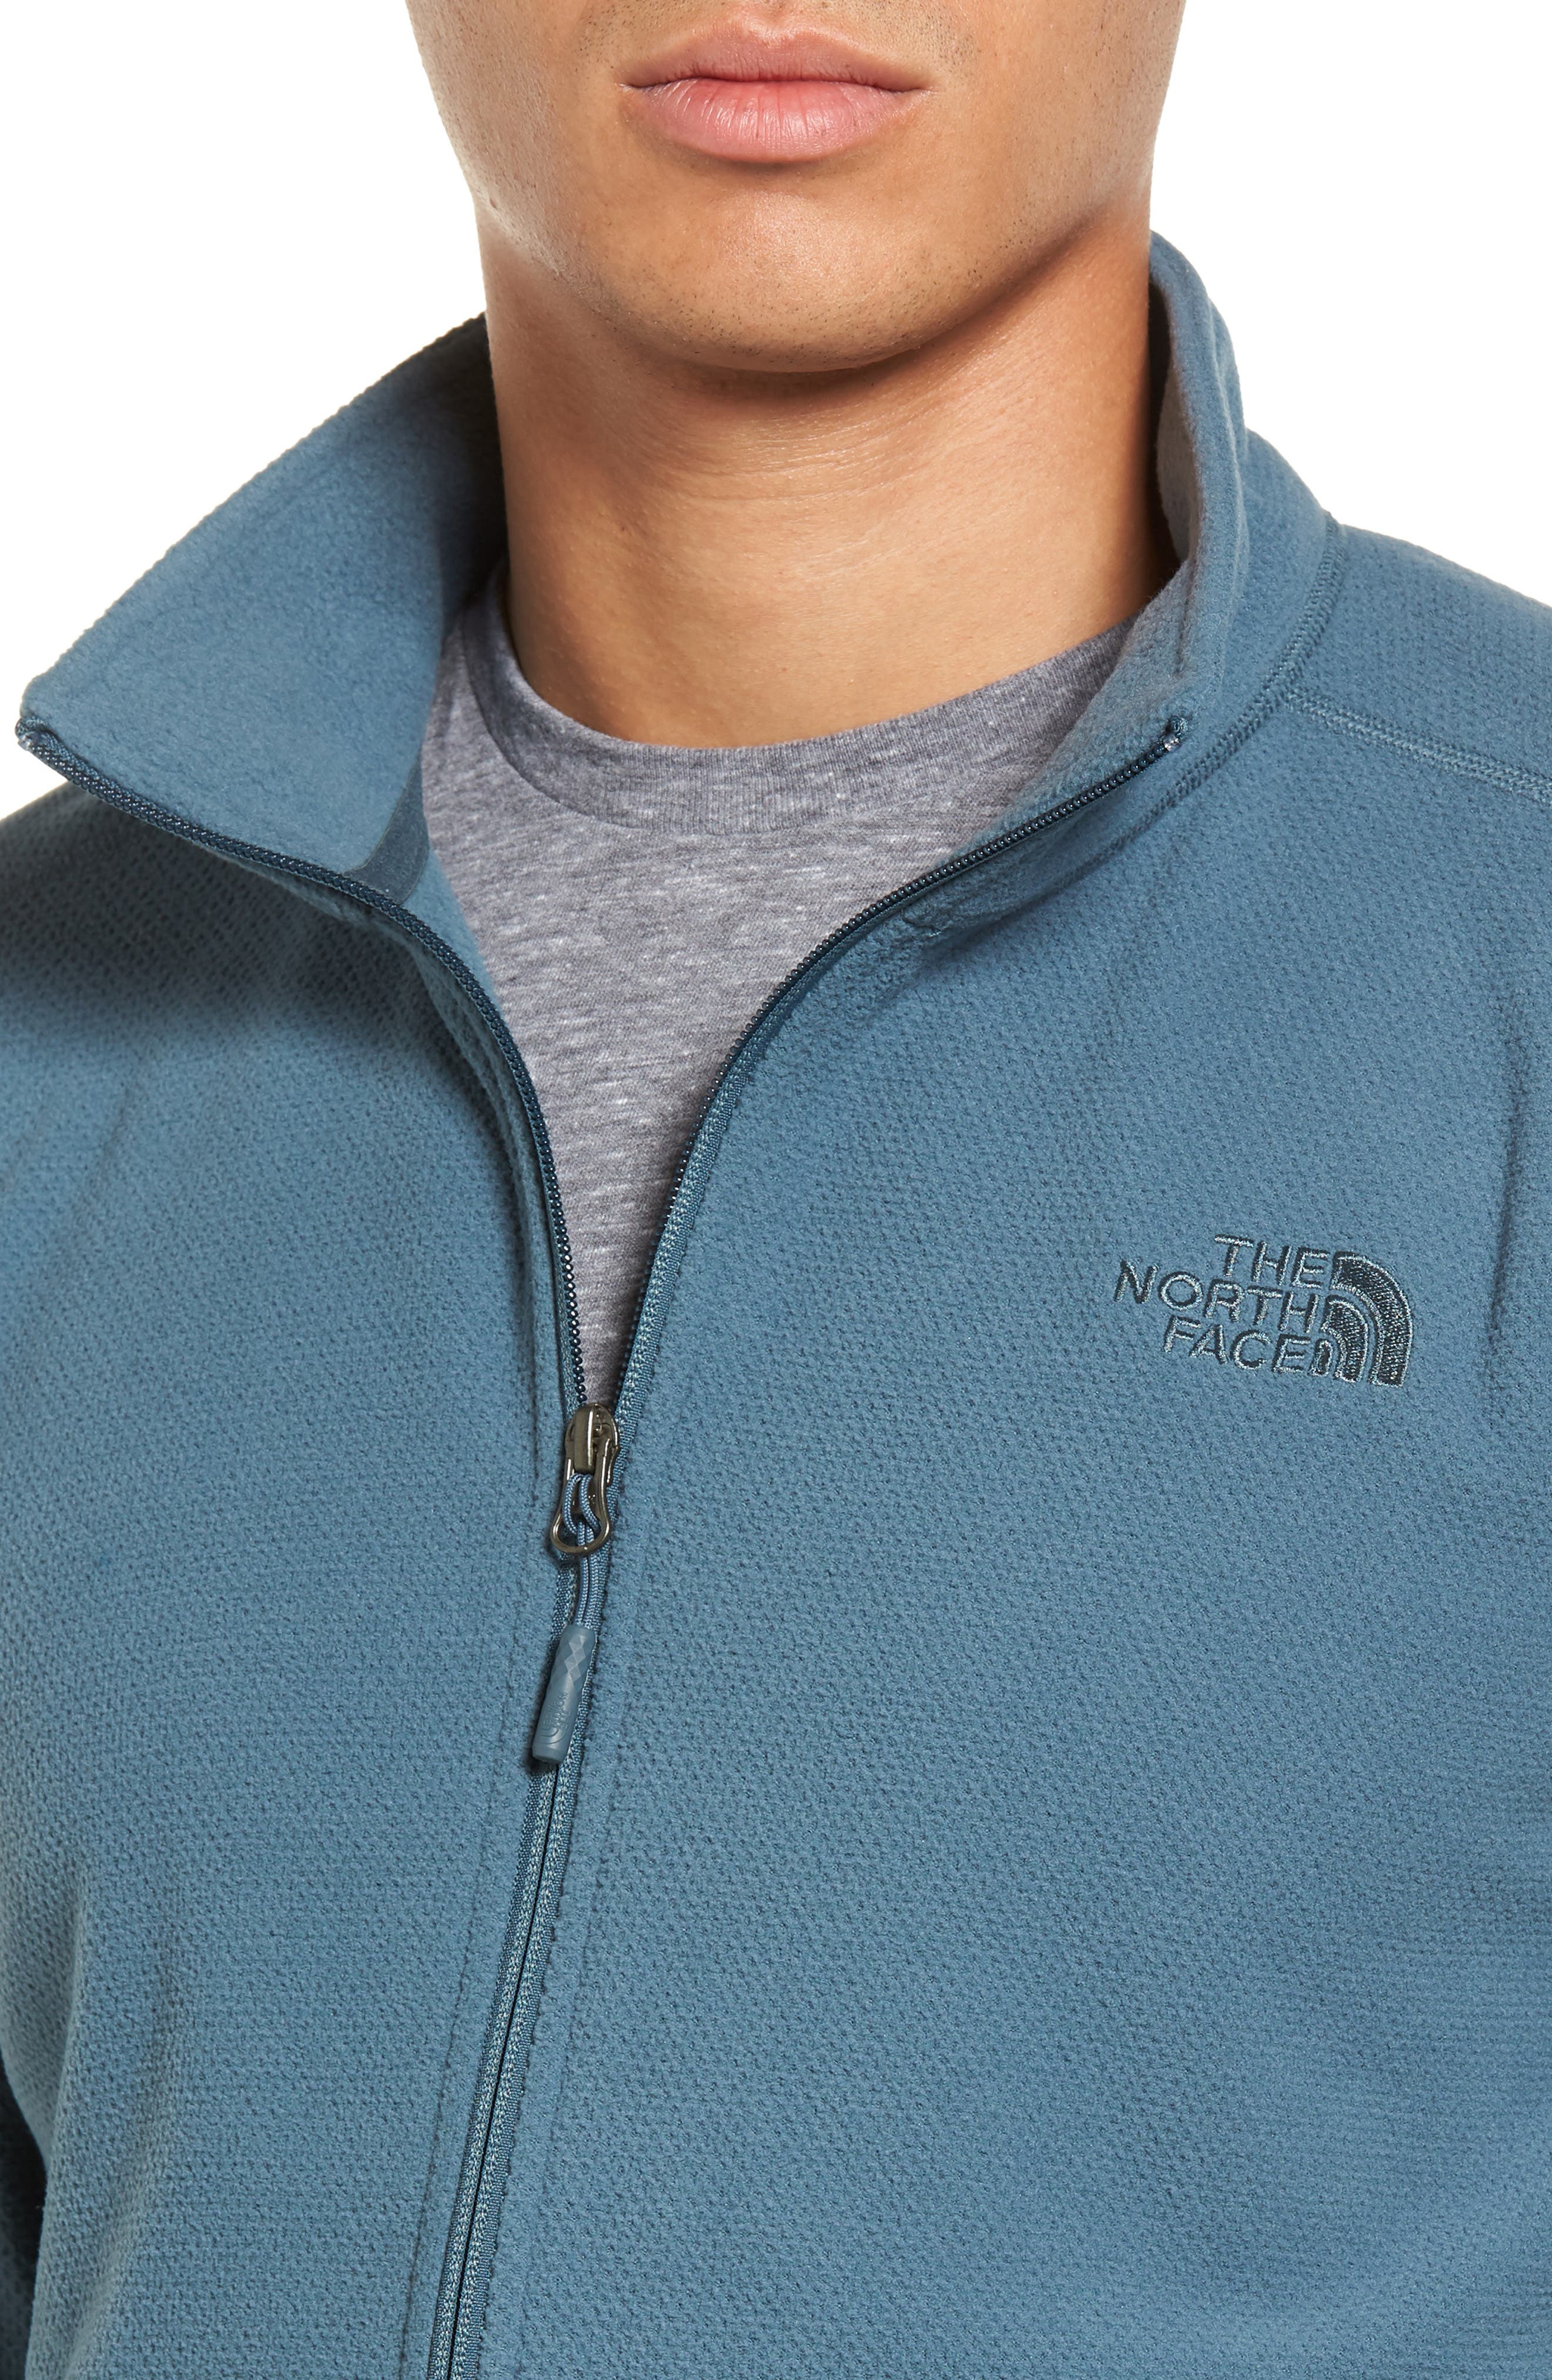 Cap Rock Fleece Jacket,                             Alternate thumbnail 4, color,                             Conquer Blue